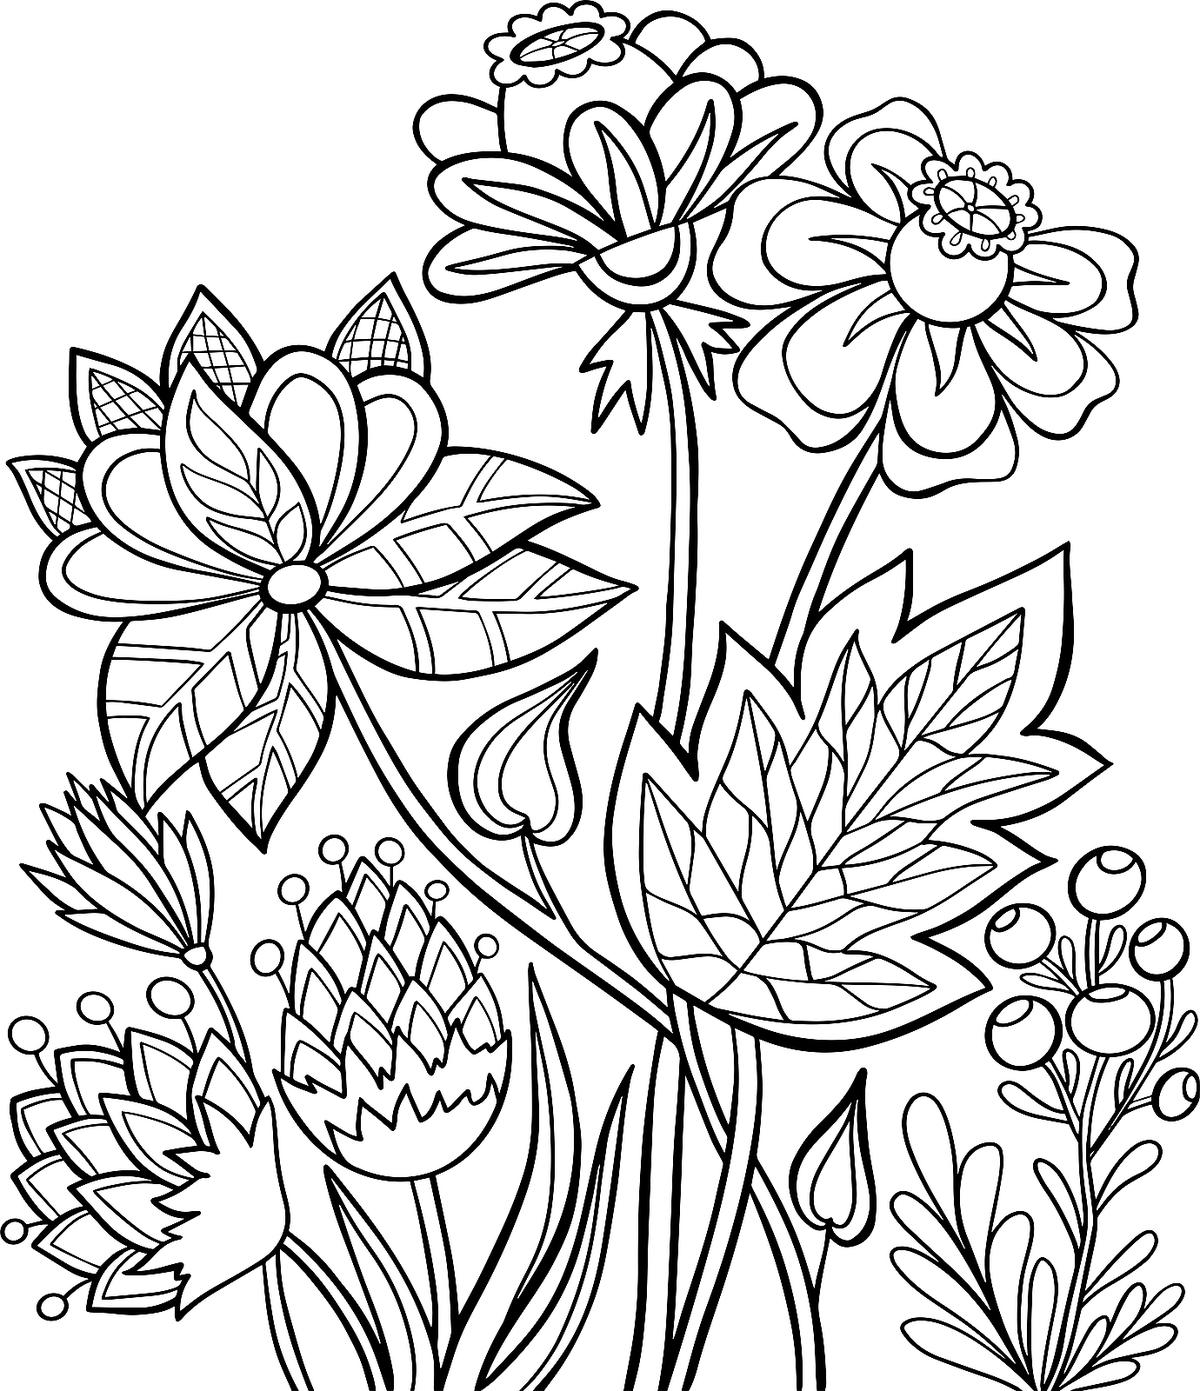 flower coloring page peony flower coloring pages download and print peony flower page coloring